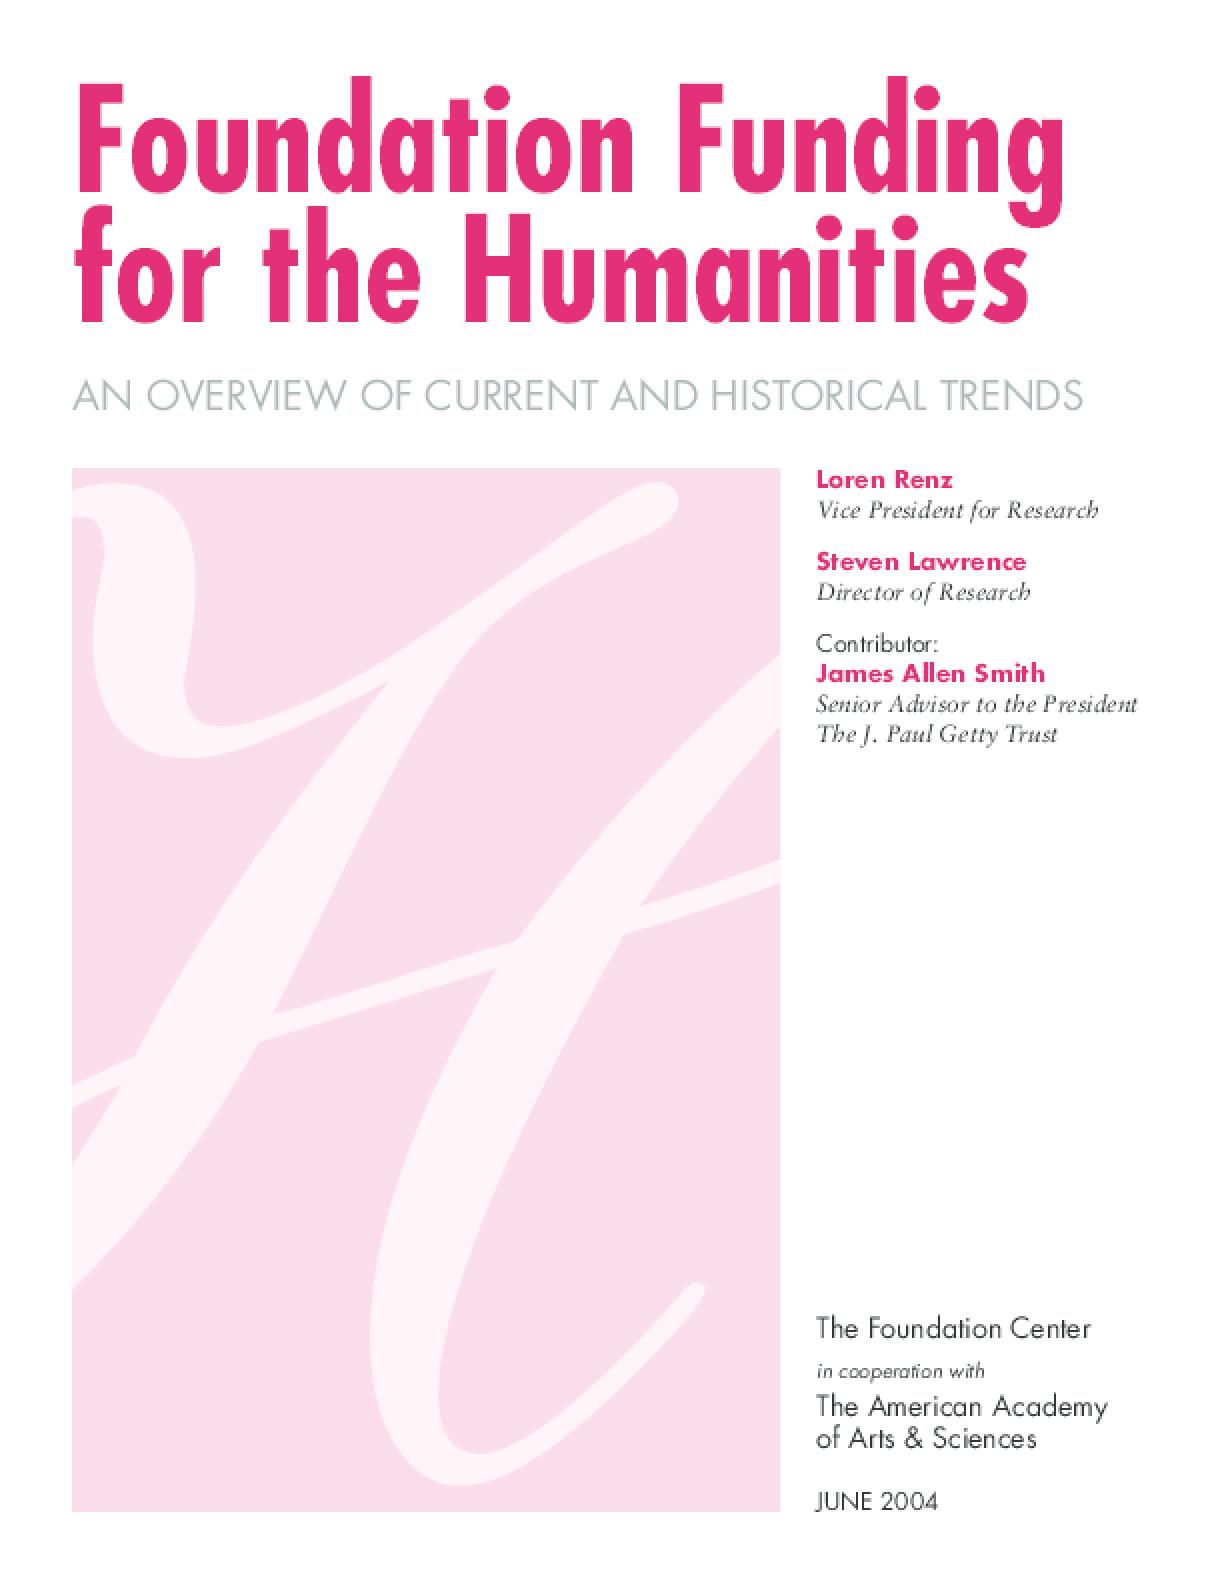 Foundation Funding for the Humanities: An Overview of Current and Historical Trends